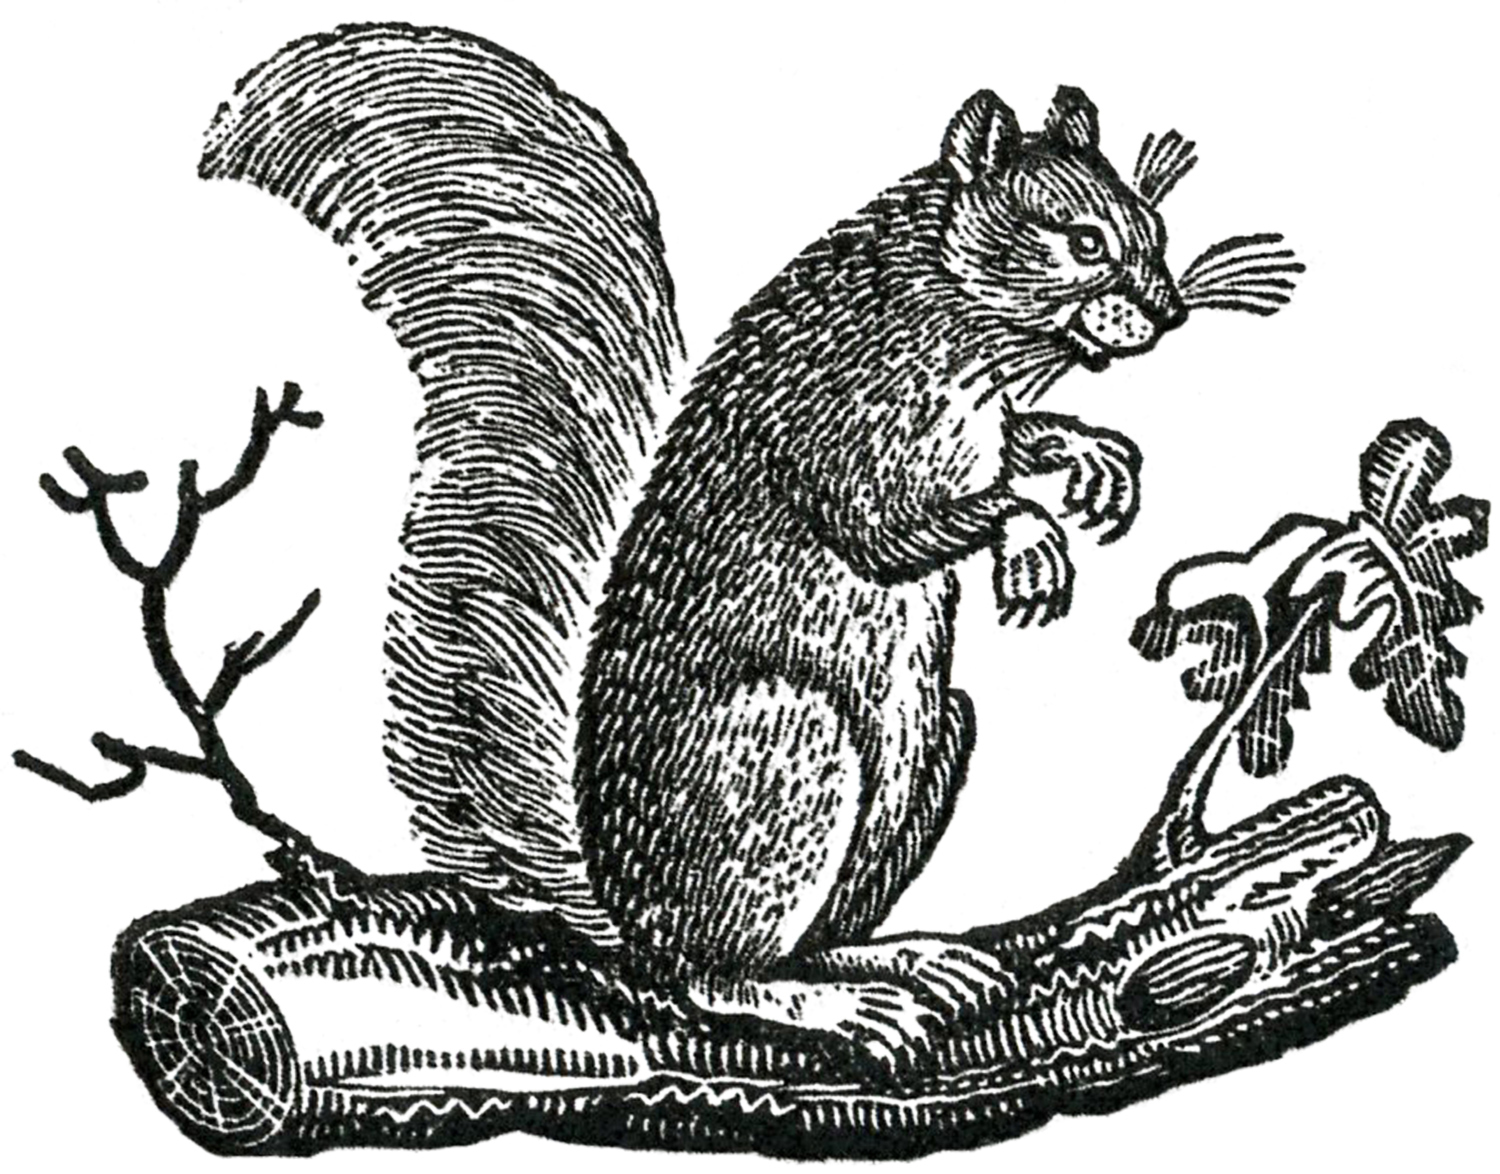 Squirrel clipart public domain image stock 16 Squirrel Images - Adorable! - The Graphics Fairy image stock